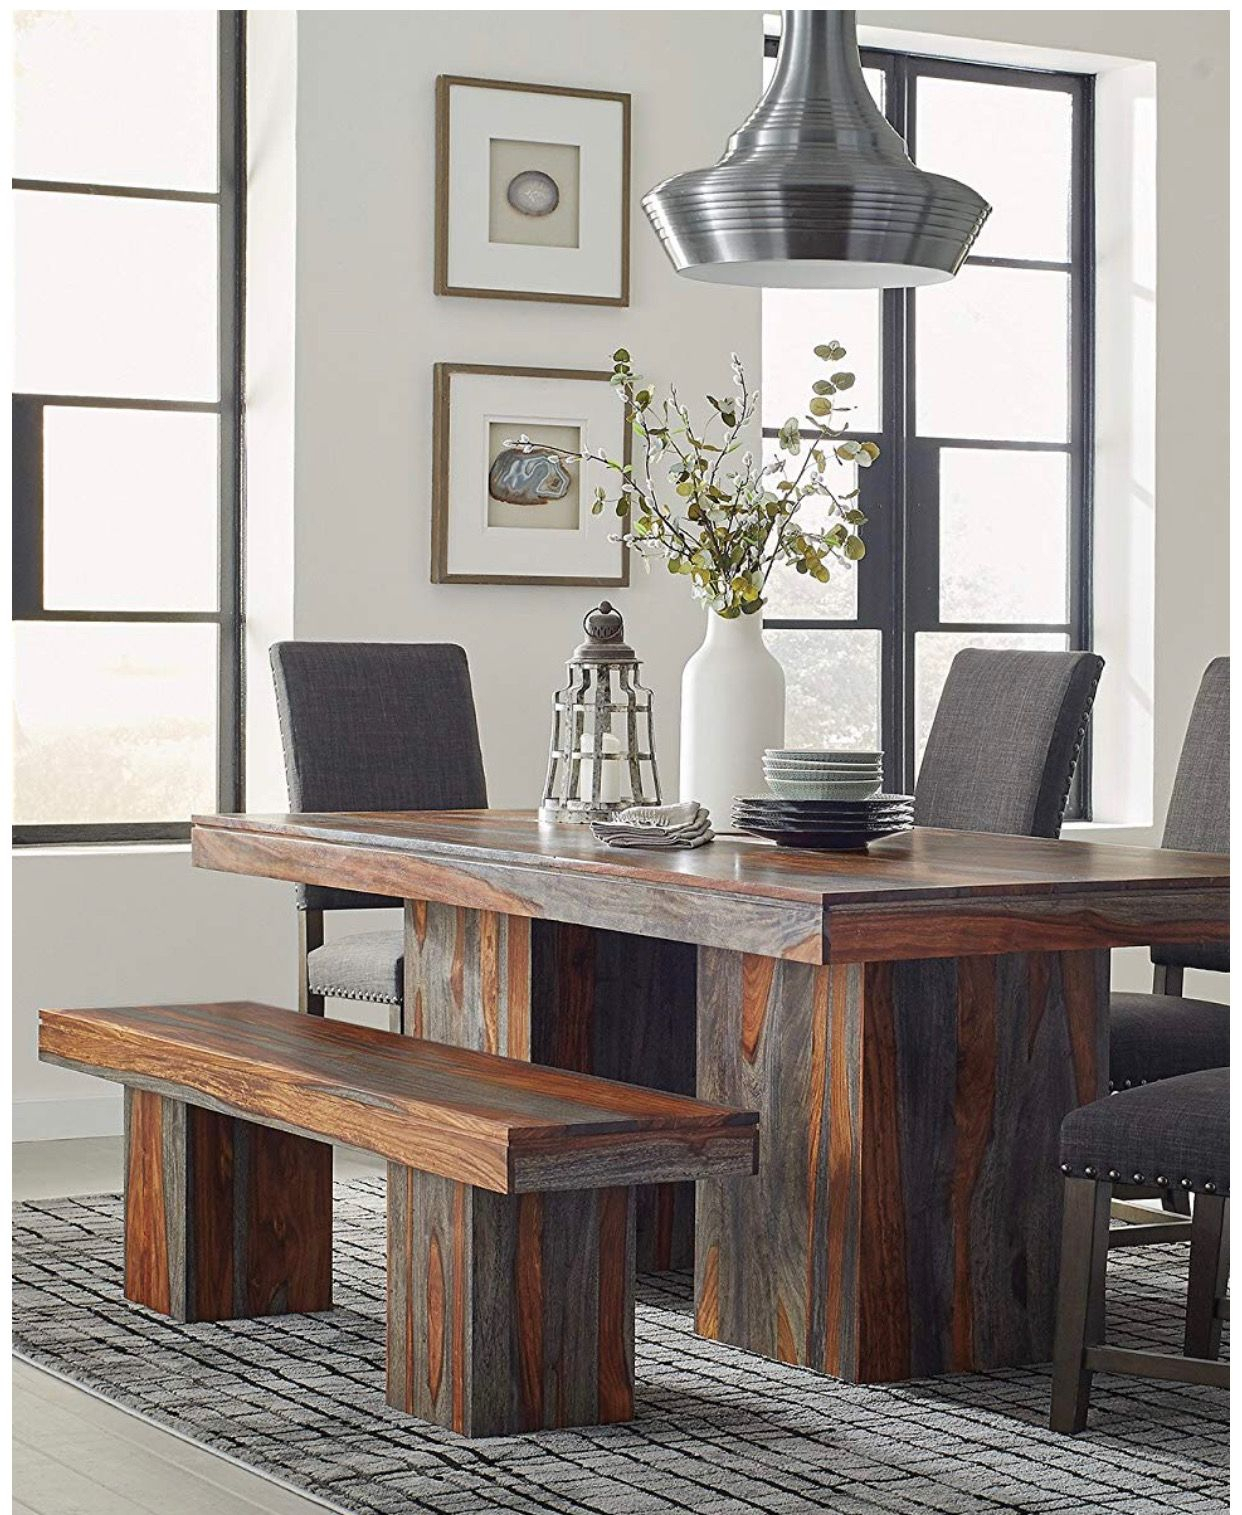 Mine!💕💕 | Dining Table In Kitchen, Solid Wood Dining Table Intended For Most Current Montauk (View 14 of 15)